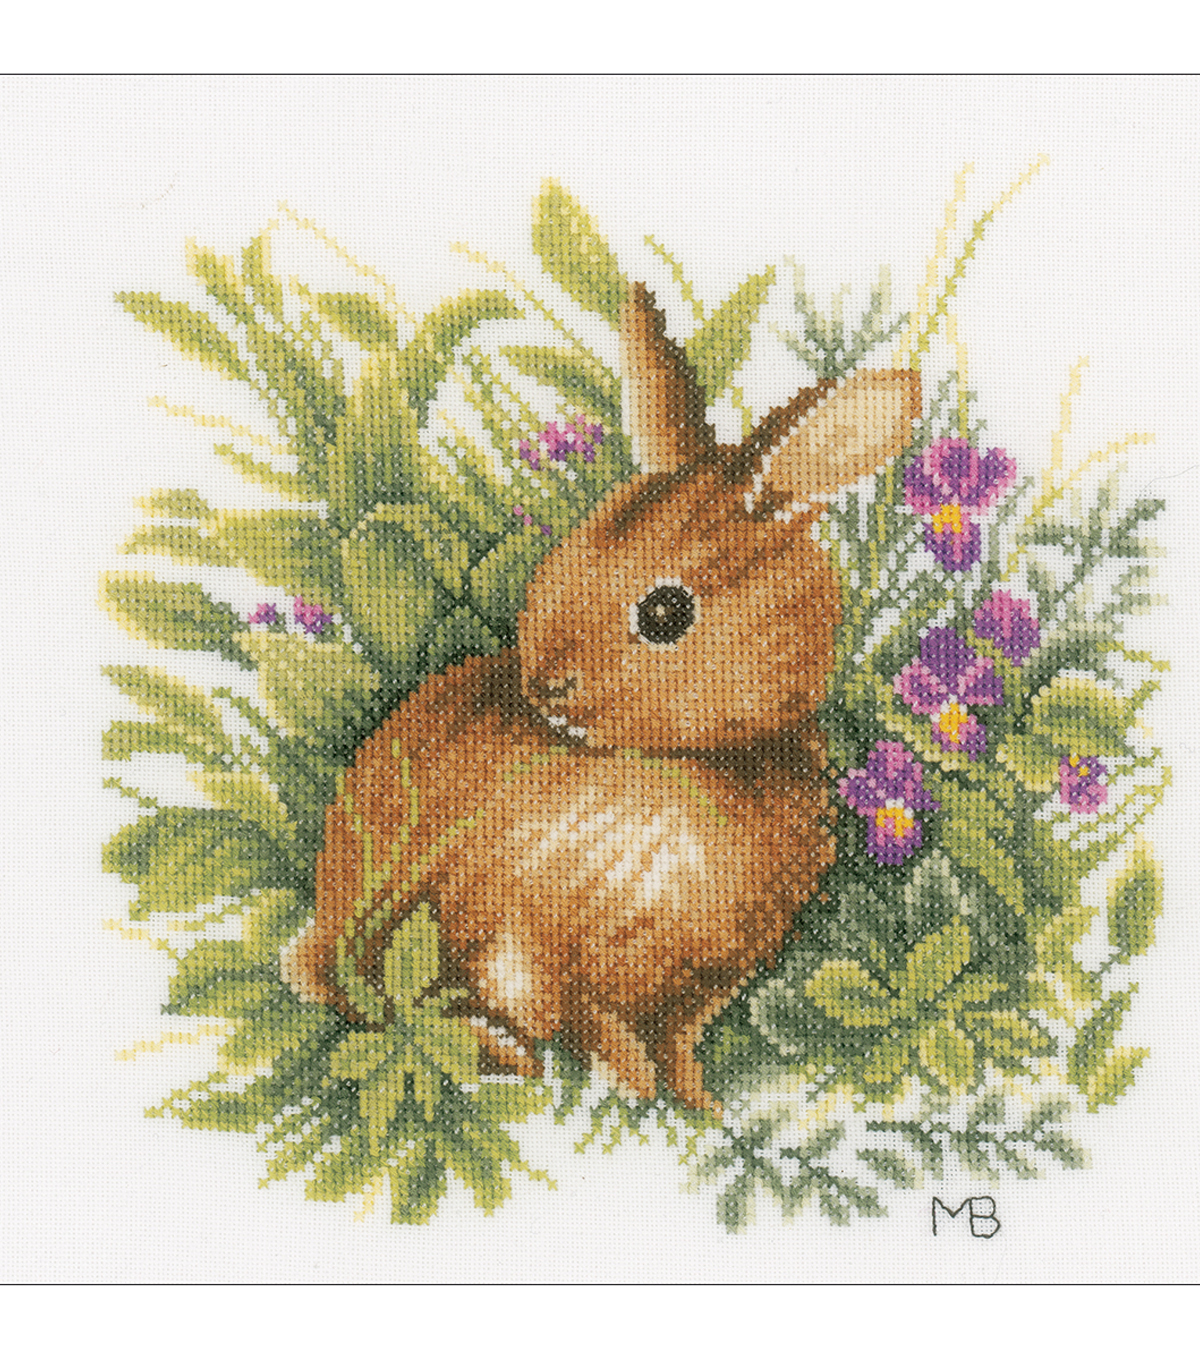 LanArte 9\u0027\u0027x9\u0027\u0027 Cotton Counted Cross Stitch Kit-Hare